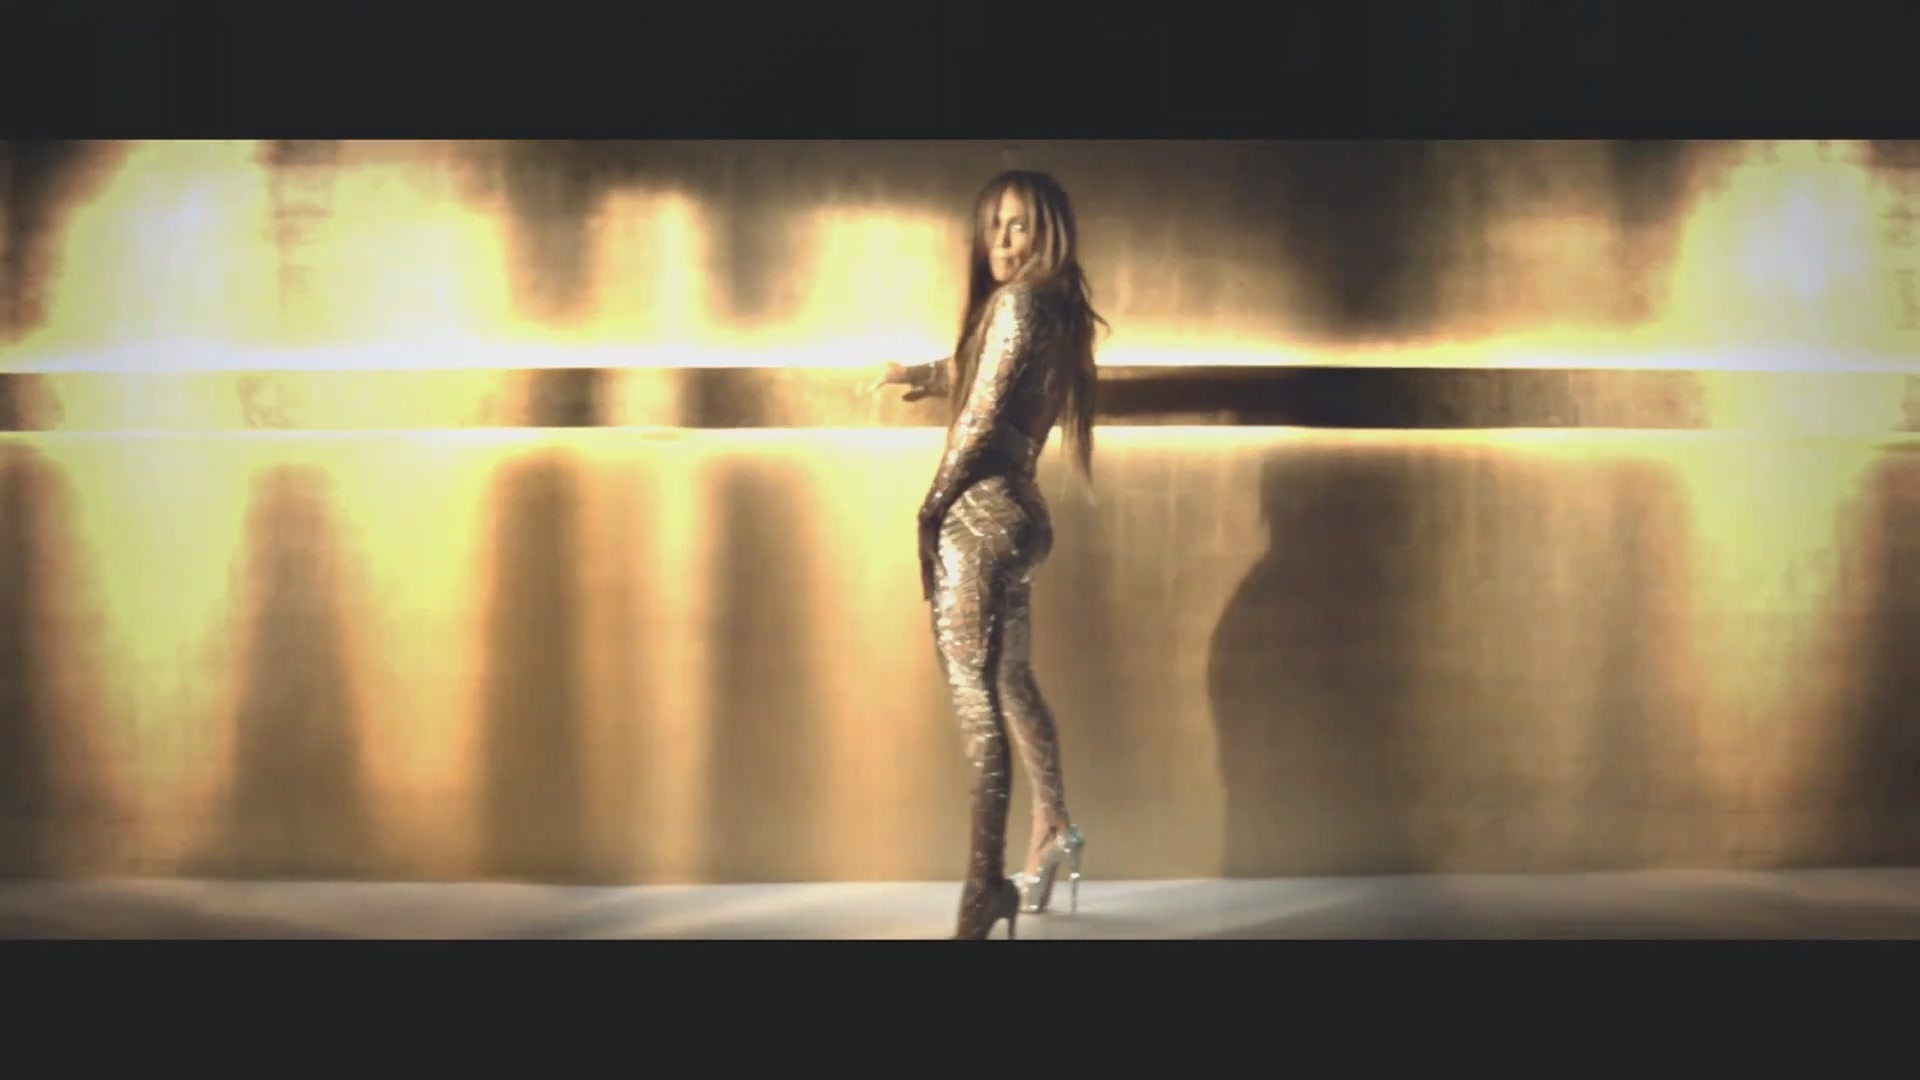 The Floor Music Video Screencaptures Jennifer Lopez Image